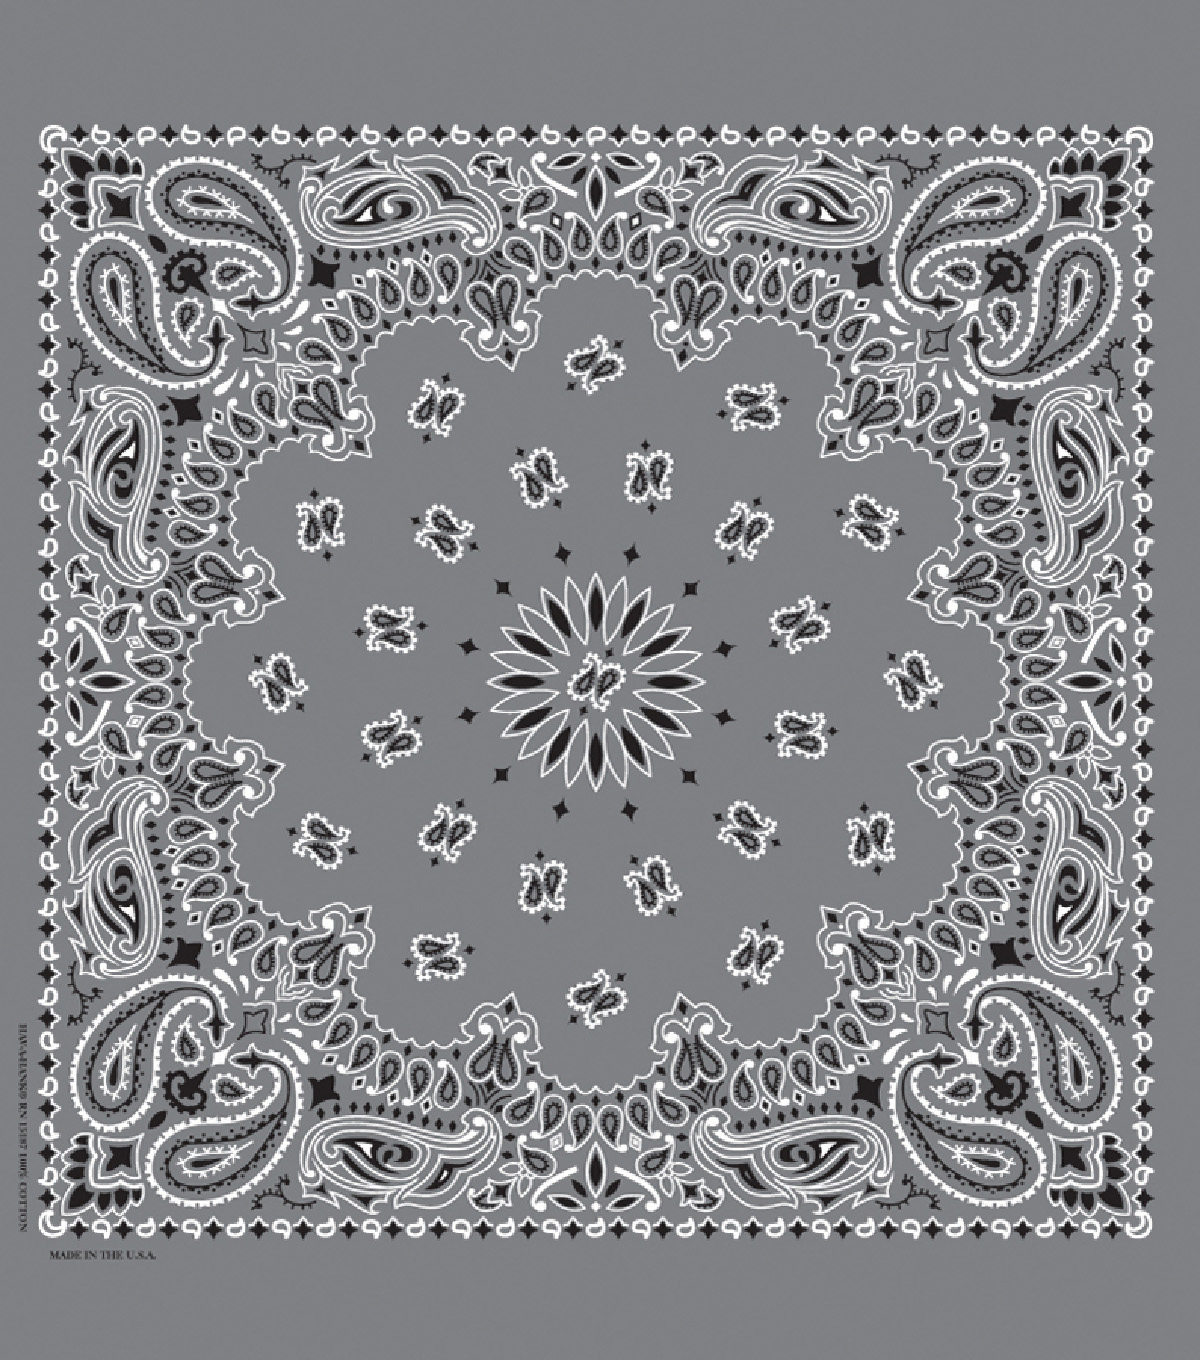 Cotton Bandanna 21\u0027\u0027x21\u0027\u0027-Paisley on Charcoal